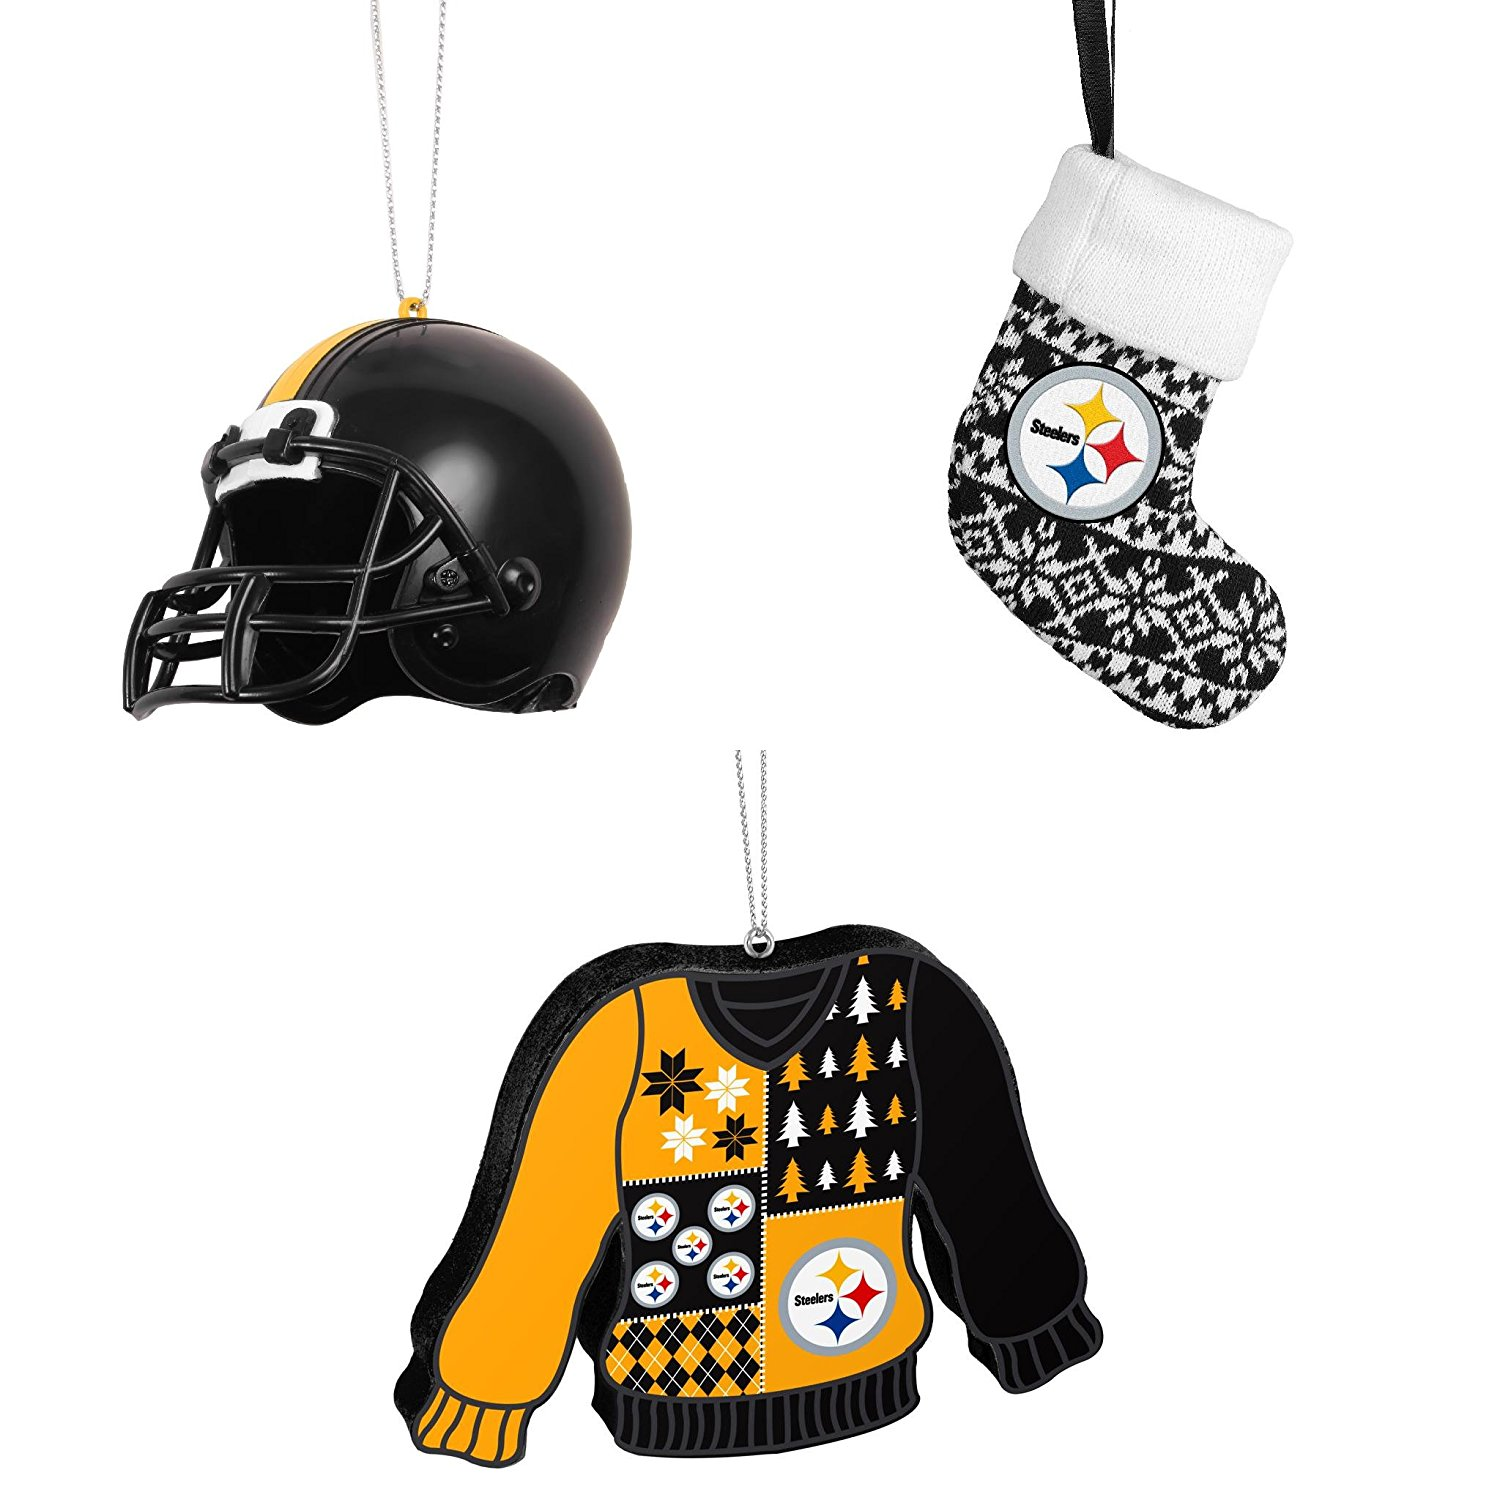 quality design 6660b e8e10 Buy Pittsburgh Steelers Ugly Christmas Sweater in Cheap ...